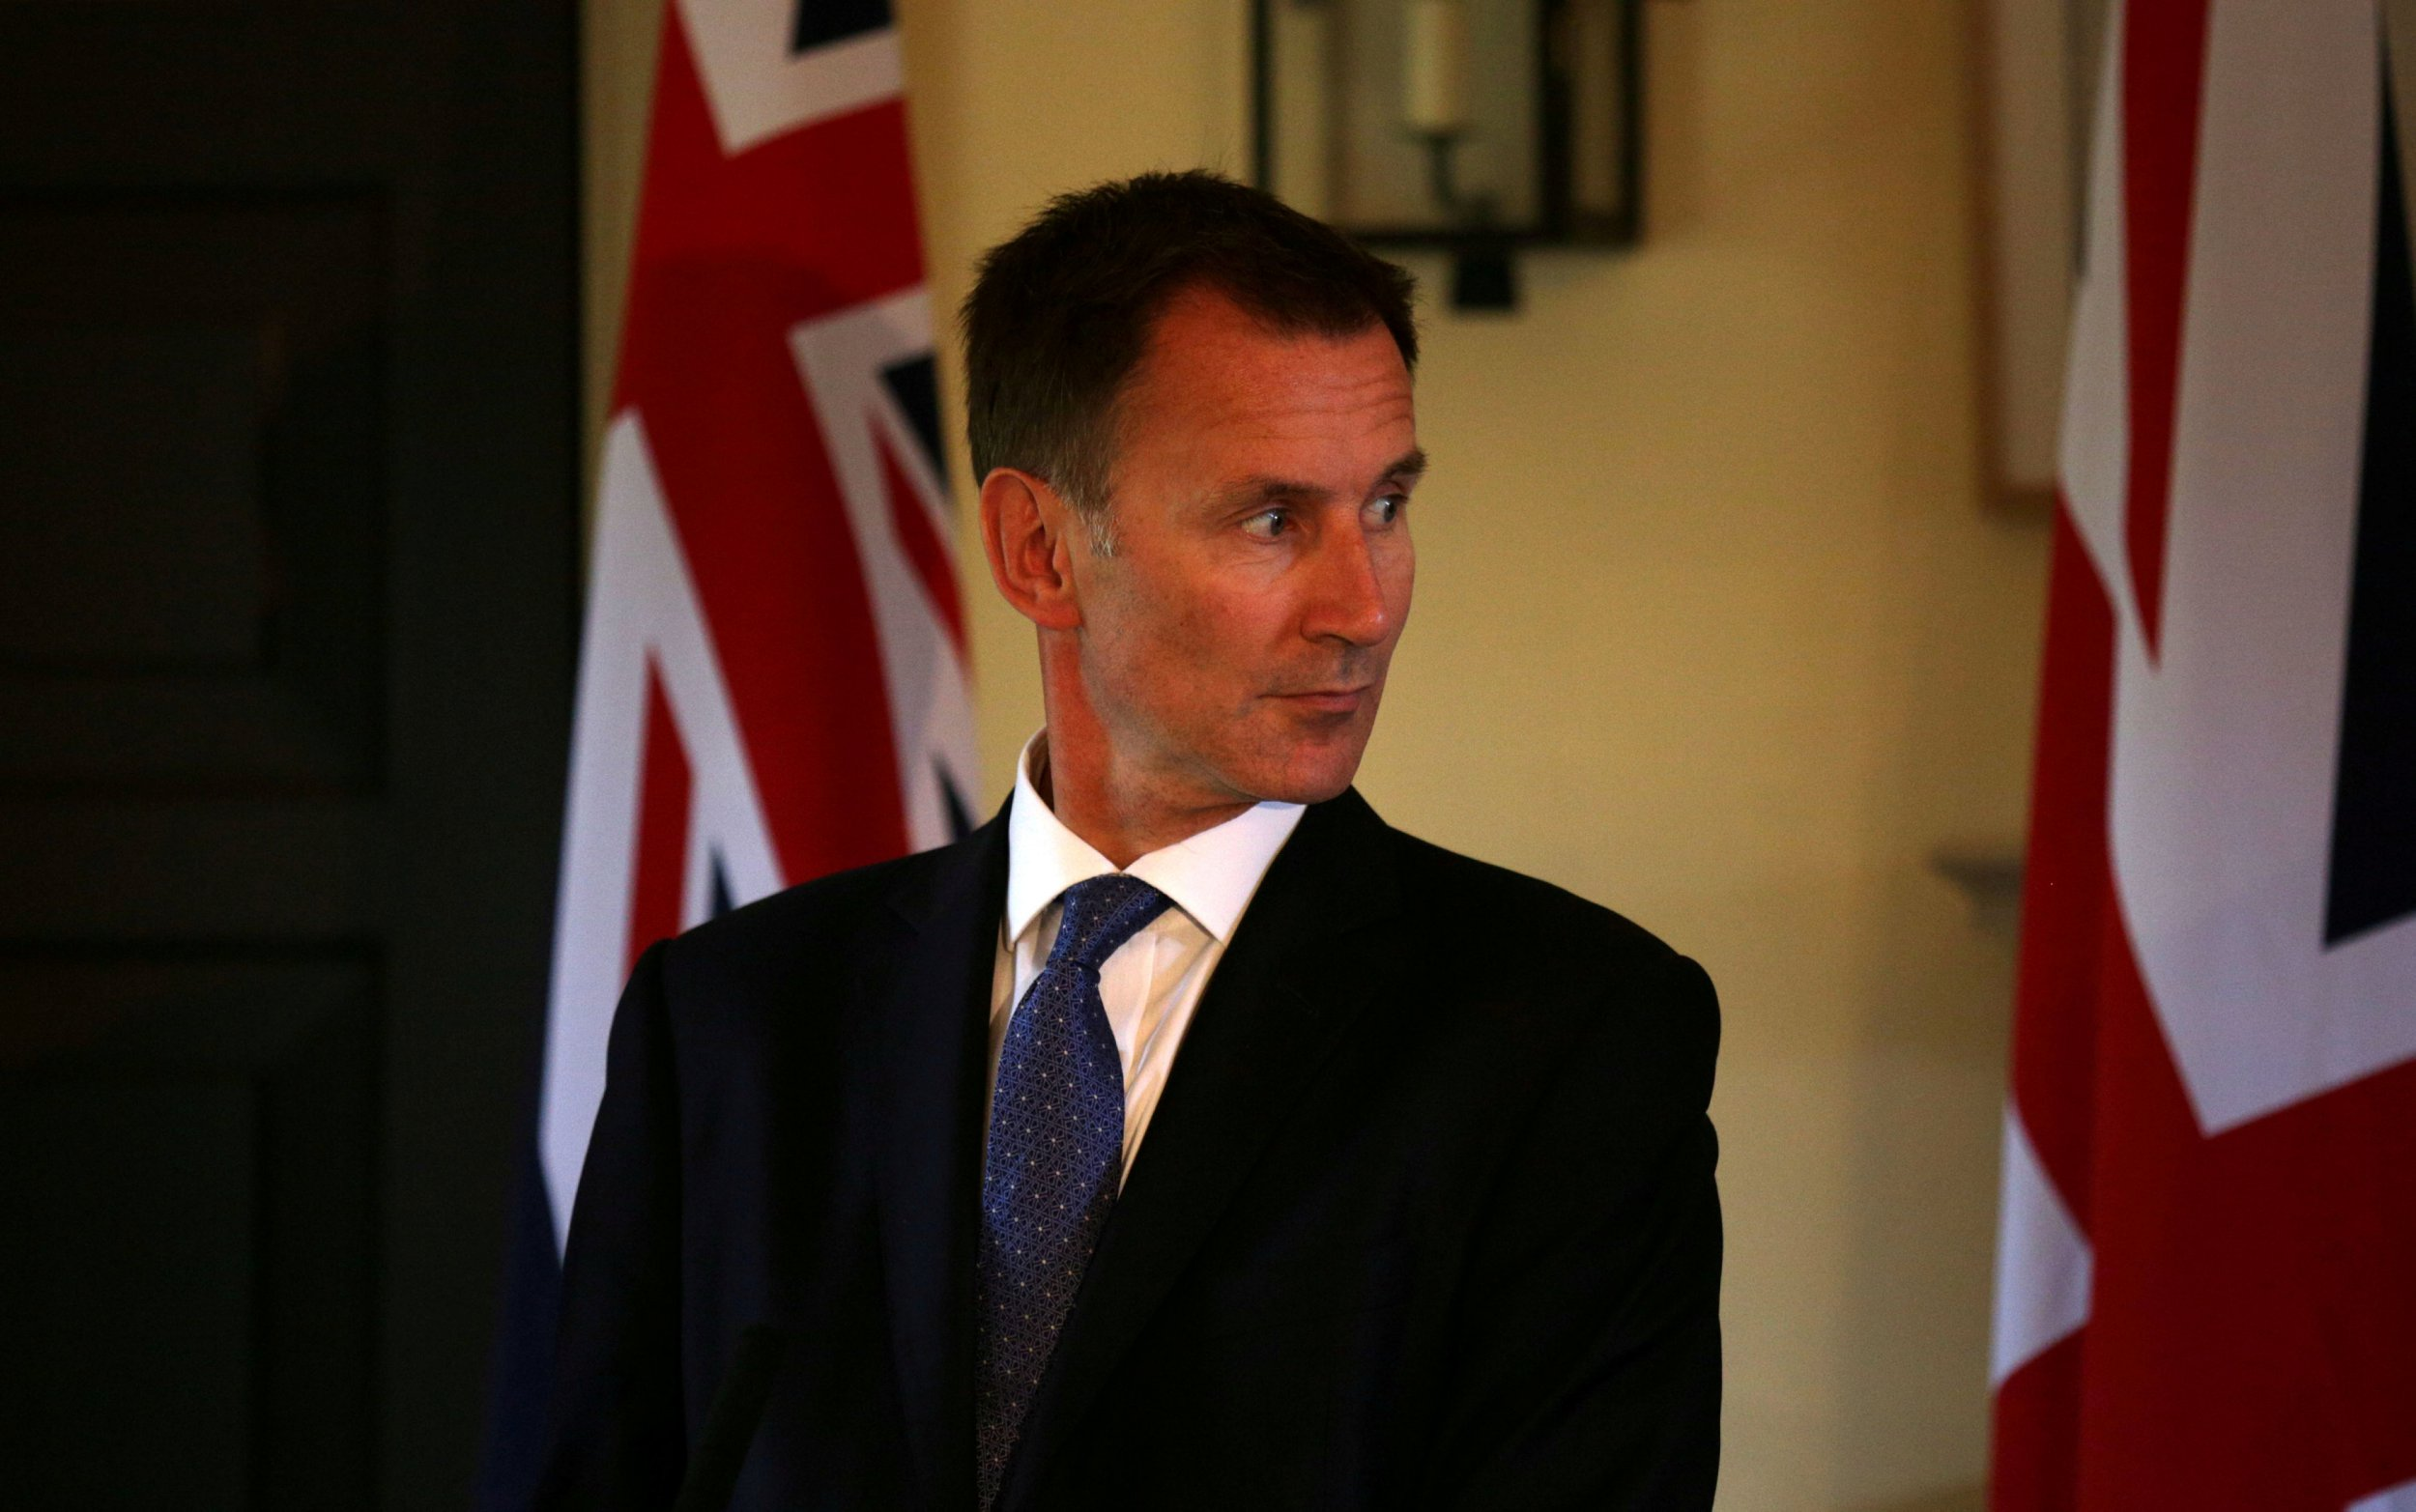 FILE PHOTO: Britain's Foreign Secretary Jeremy Hunt gives a press conference at the Royal Botanic Garden in Edinburgh, Scotland July 20, 2018. David Cheskin/Pool via Reuters/File Photo